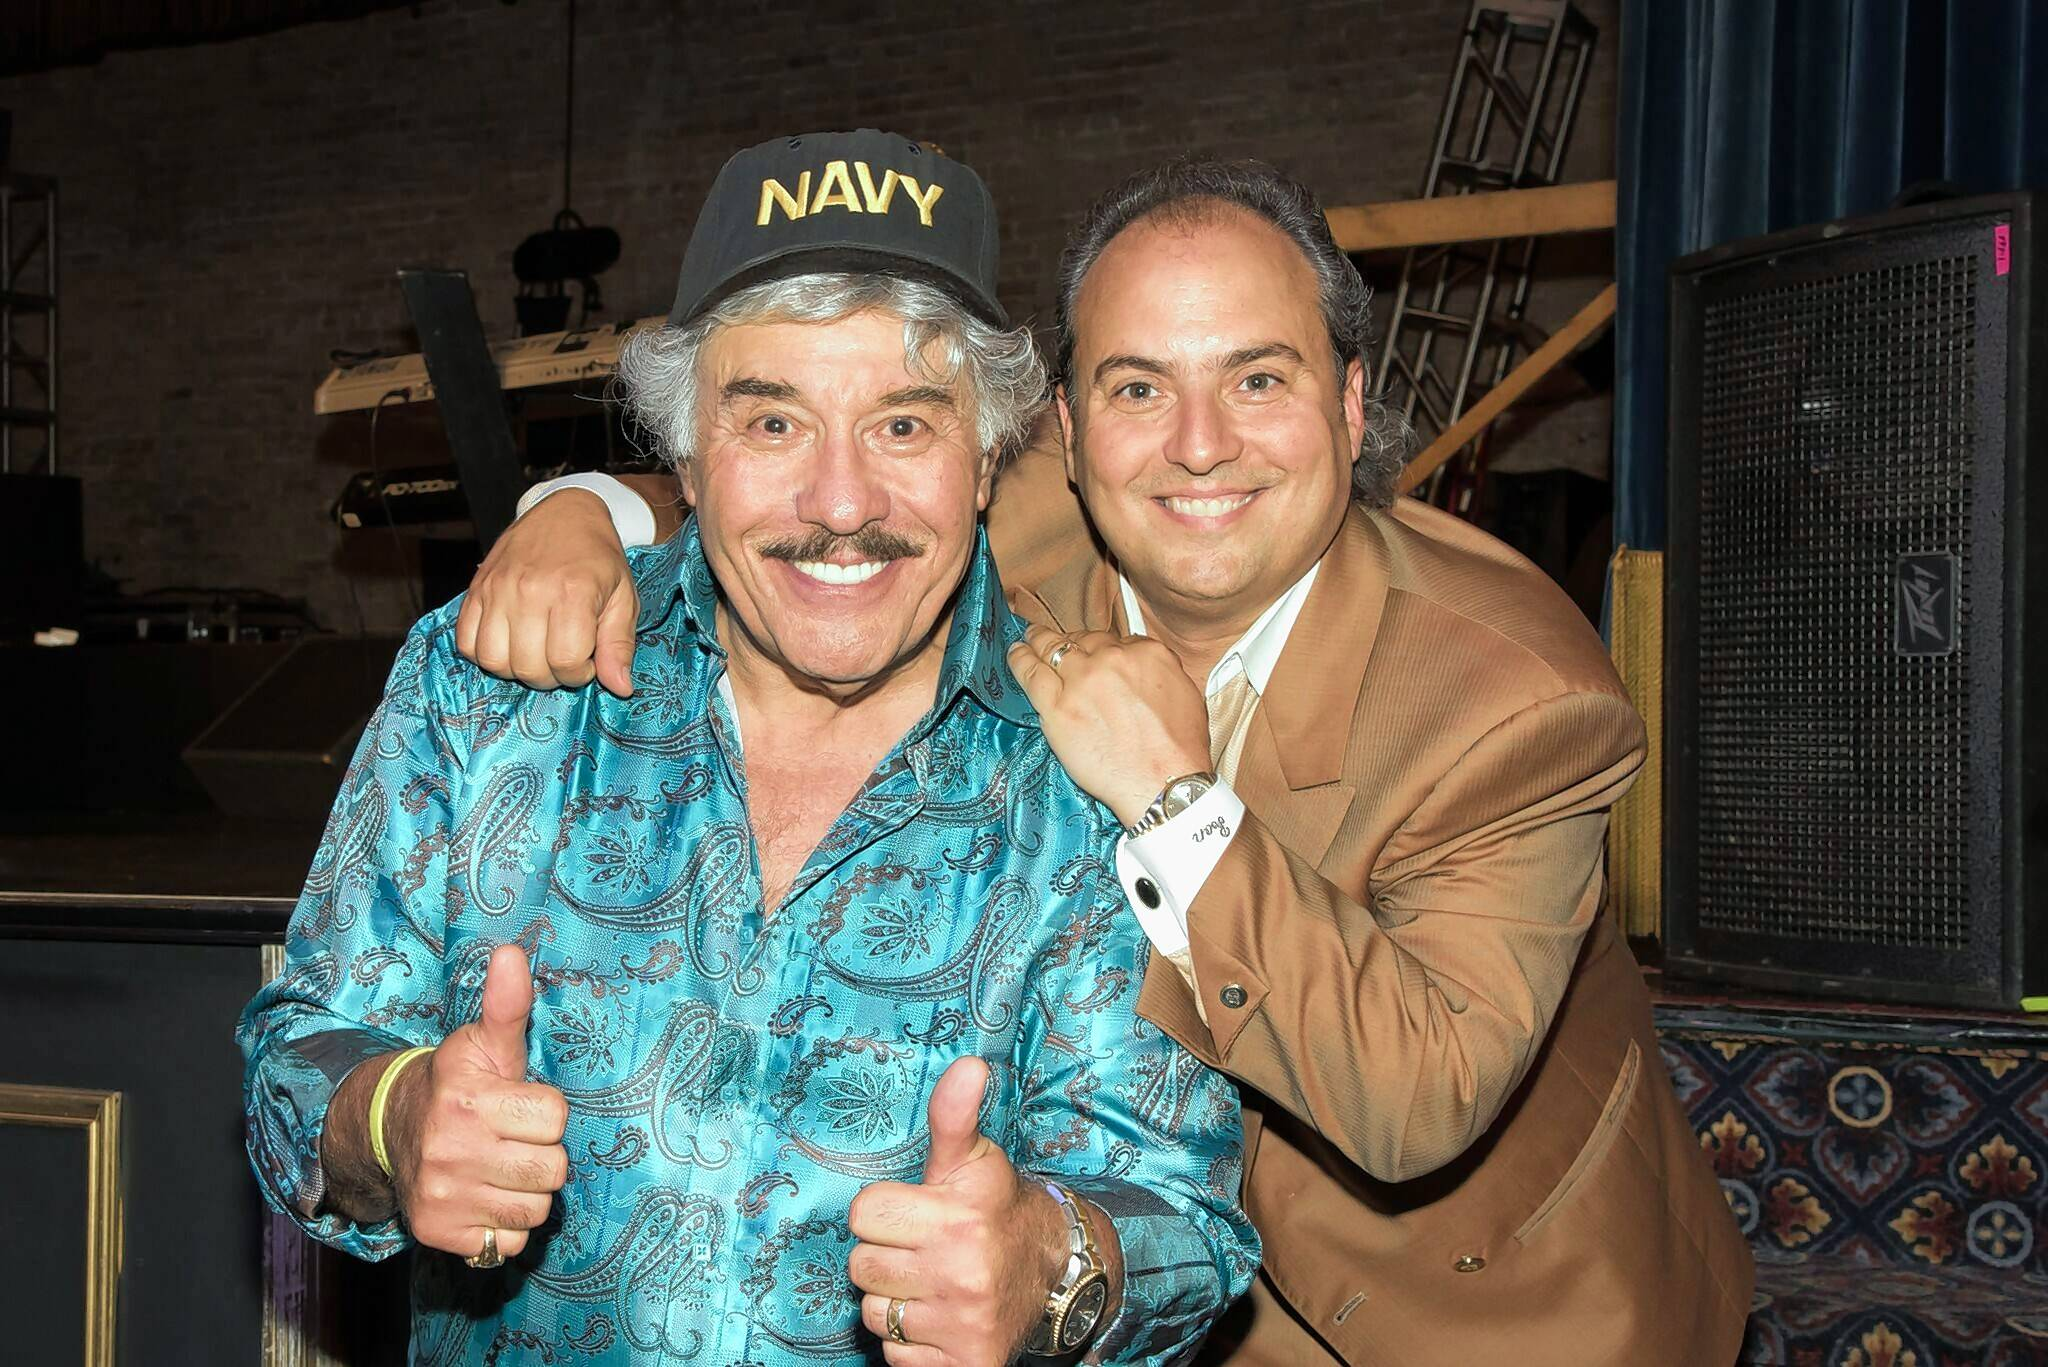 Tony Orlando, left, helped shape the musical landscape of the Seventies, which so influenced Ron Onesti when he was growing up watching Orlando's TV specials.